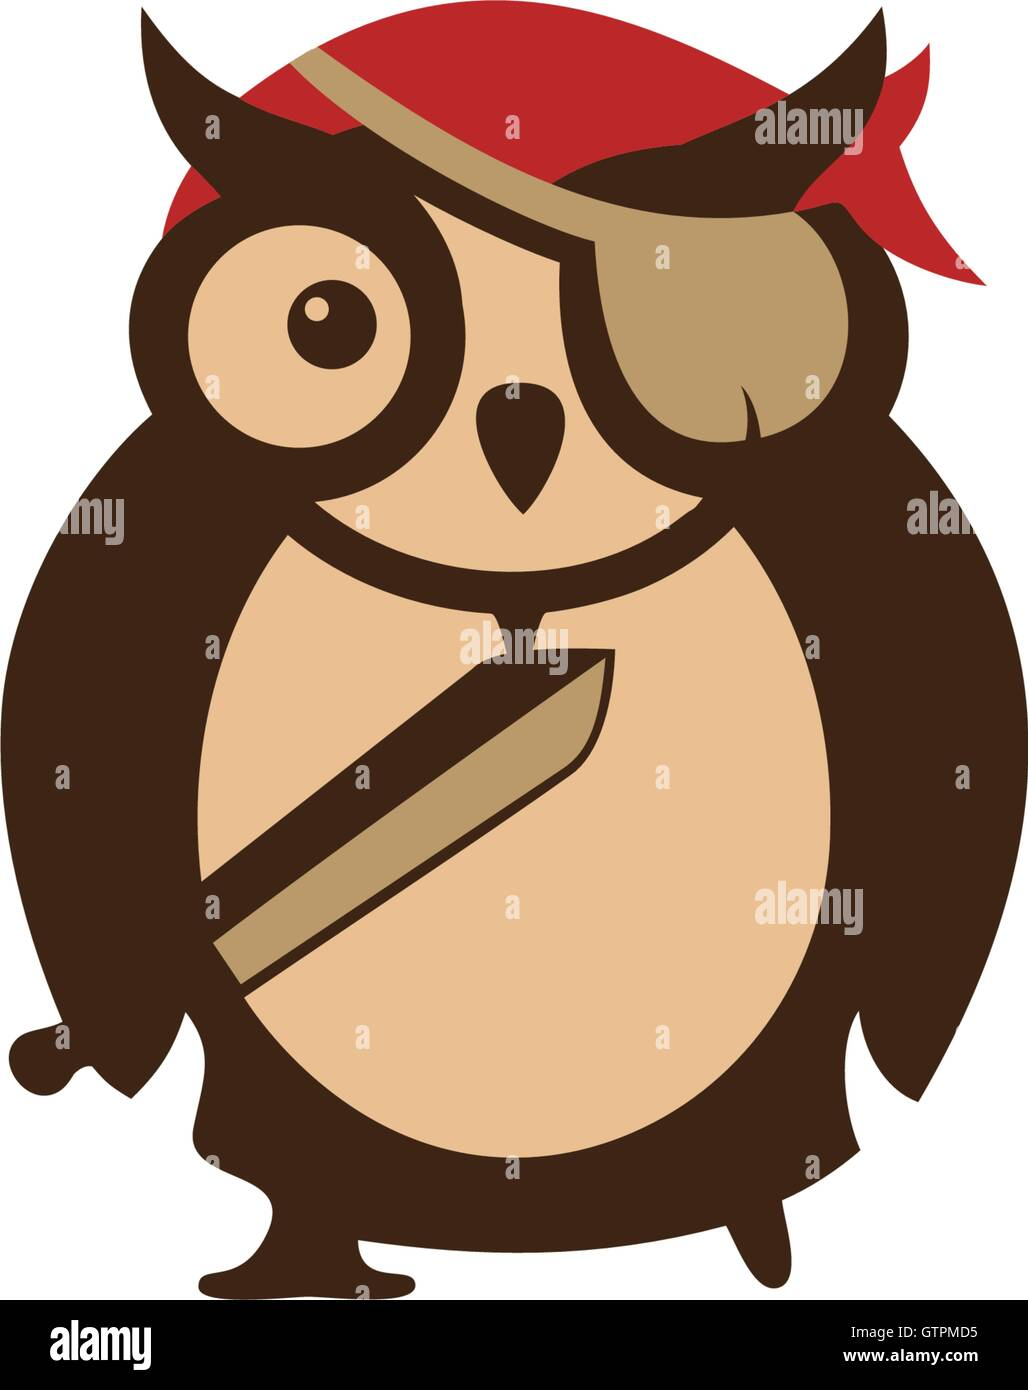 Cartoon logo, icon template. Owl design, pirate icon. Logo vector ...